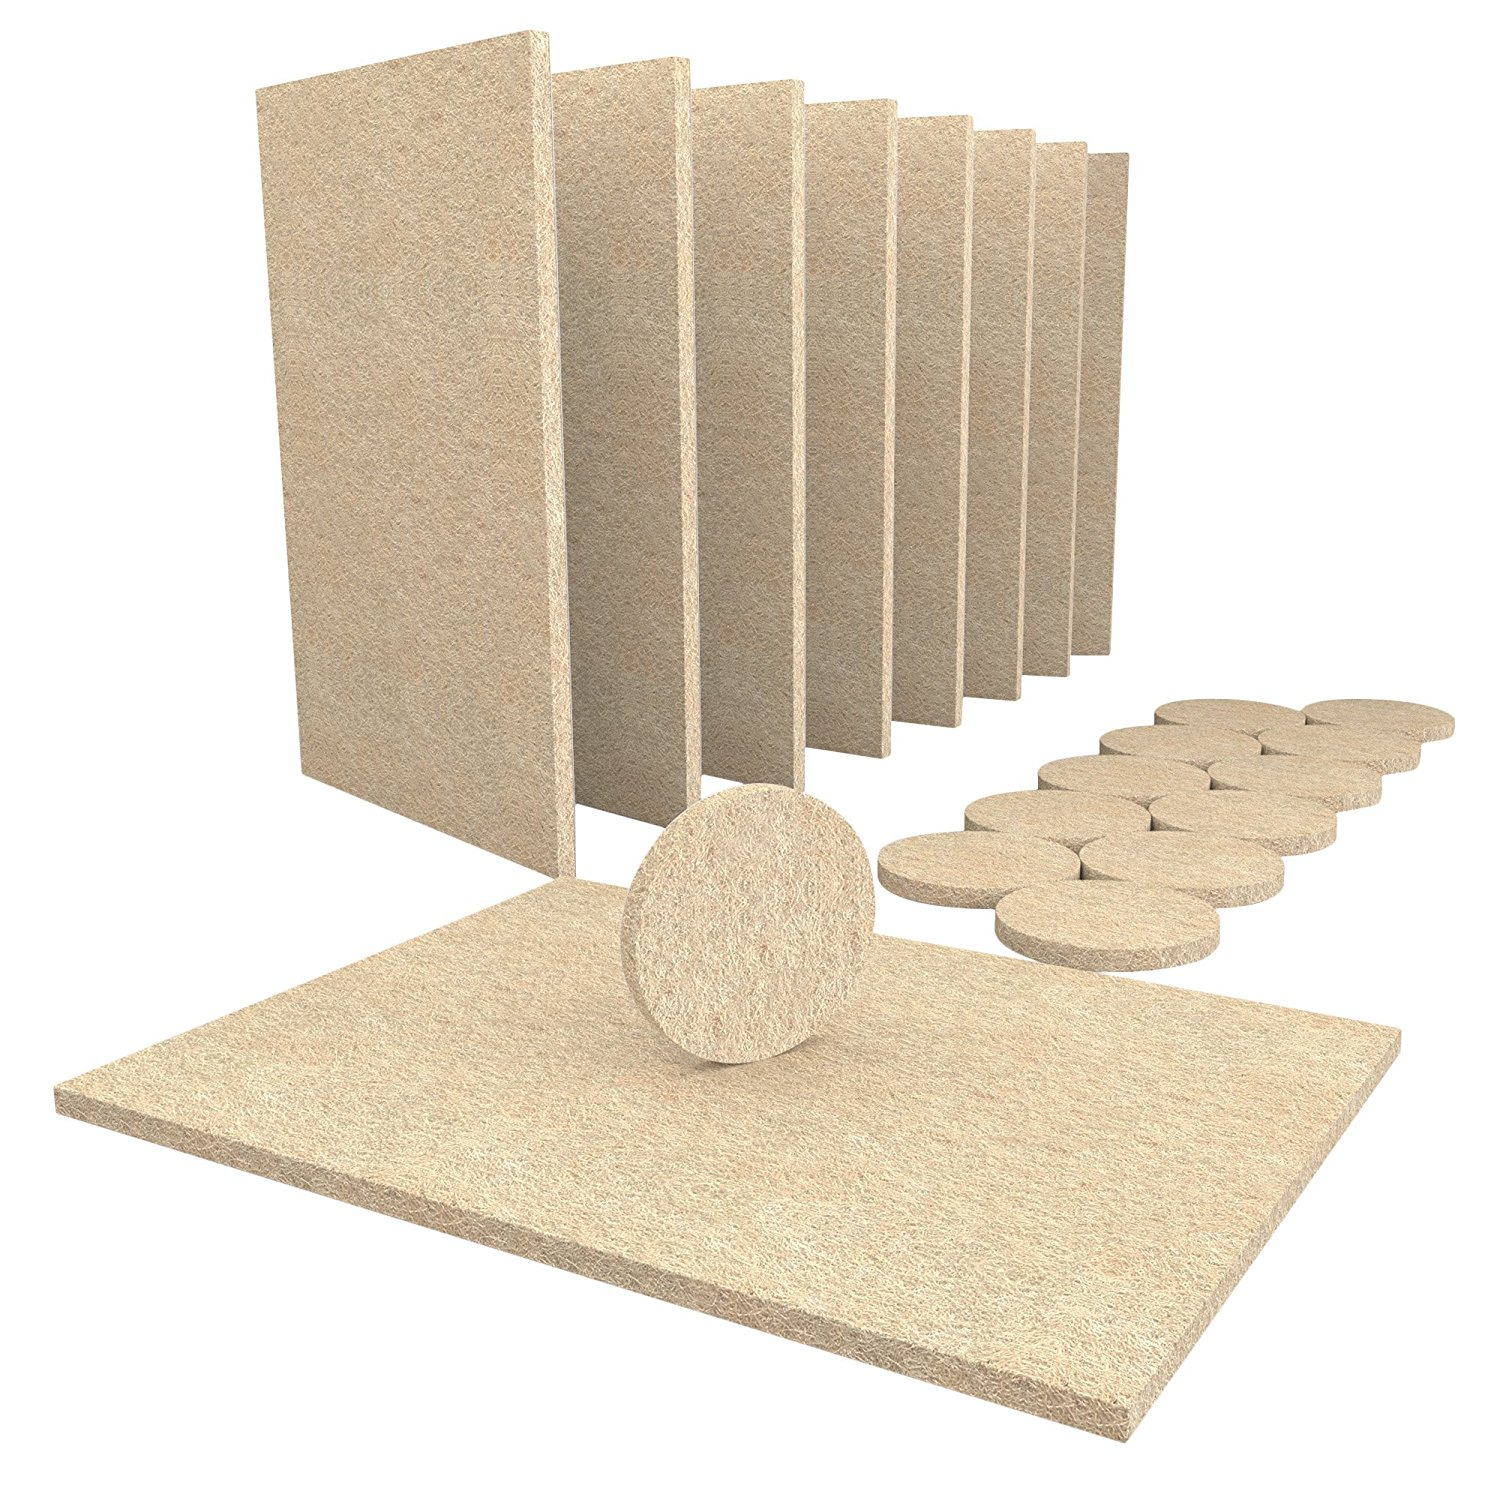 NOCM-8 Large Self Stick Furniture Felt Sheets 12 Round Felt Pads To Protect Hardwood Floors&Furniture